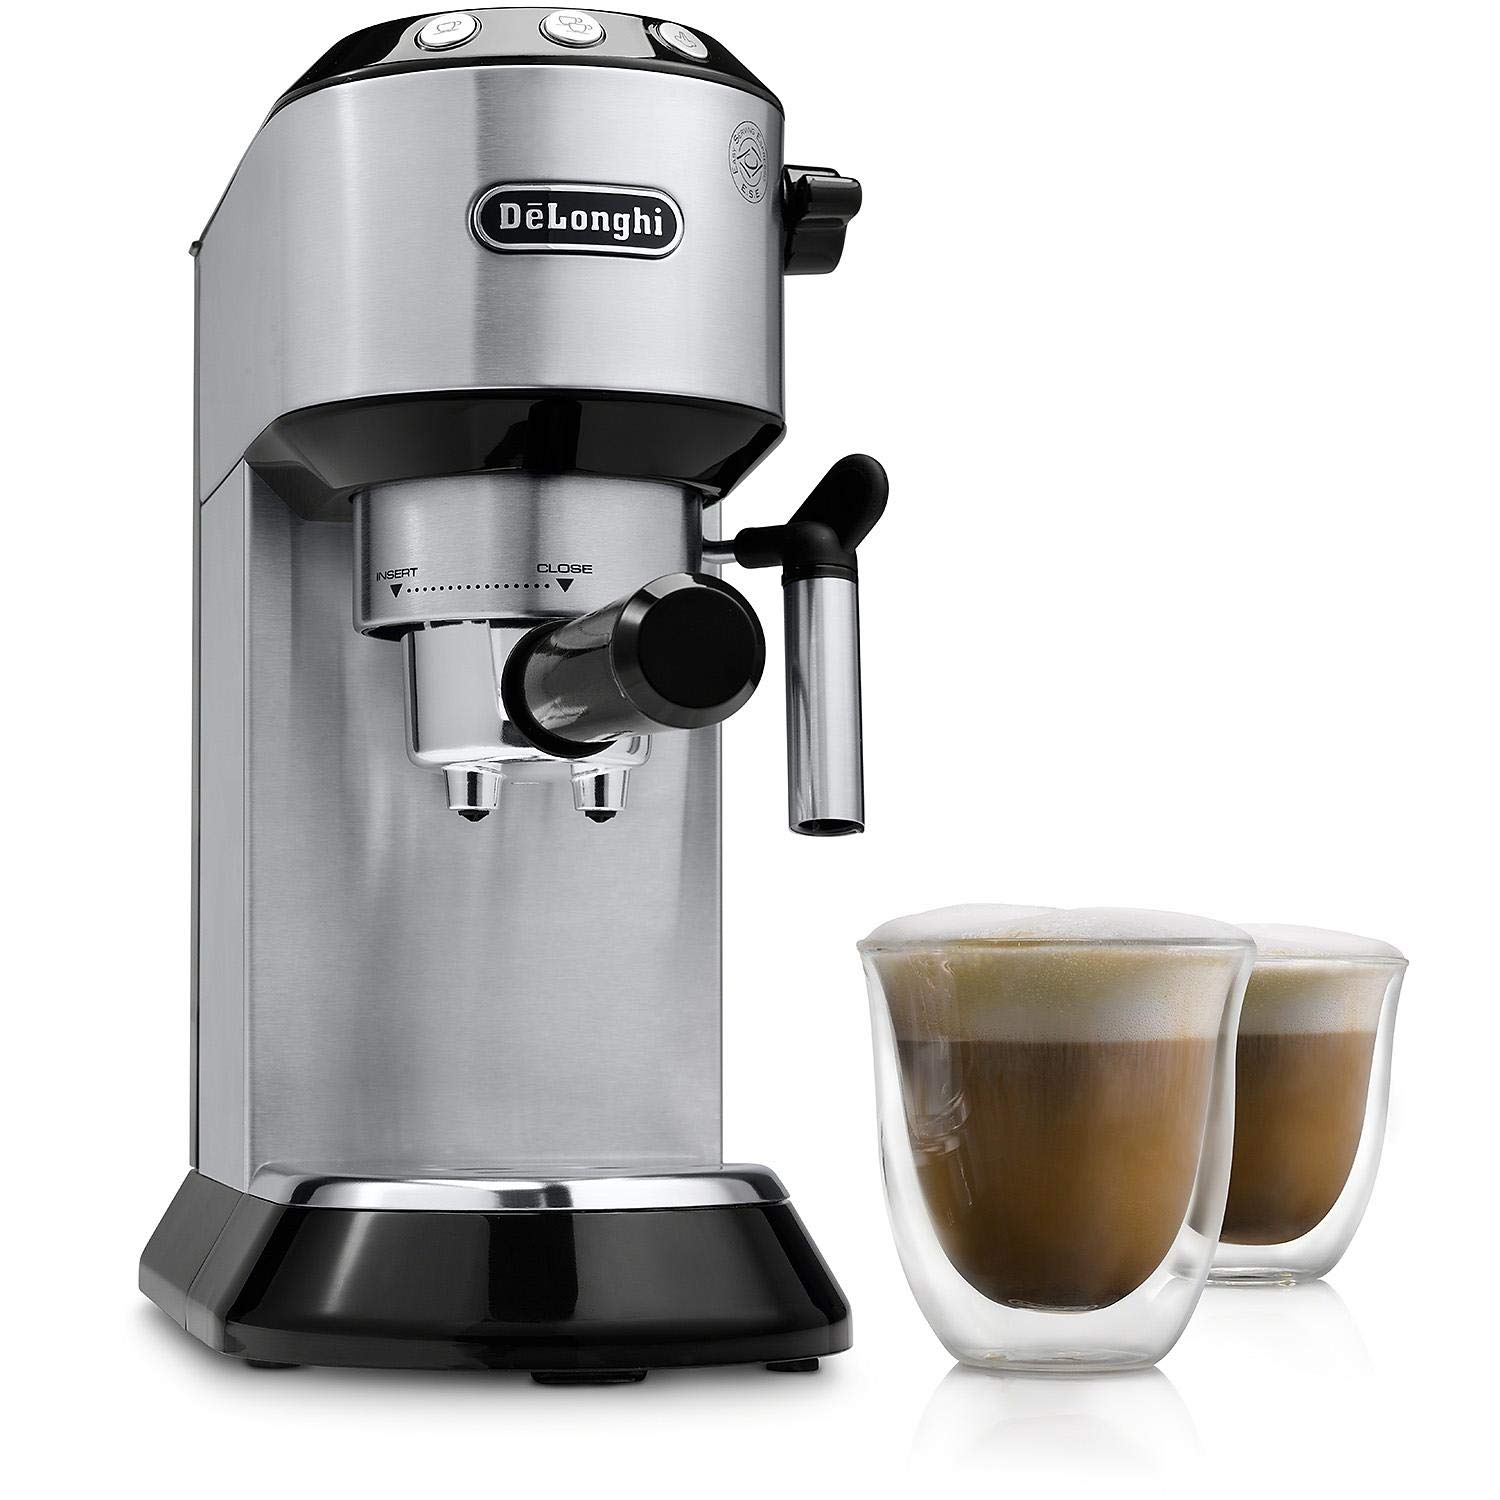 Delonghi Dedica 15 Bar Espresso and Cappuccino Machine Model EC680BMC 1300W